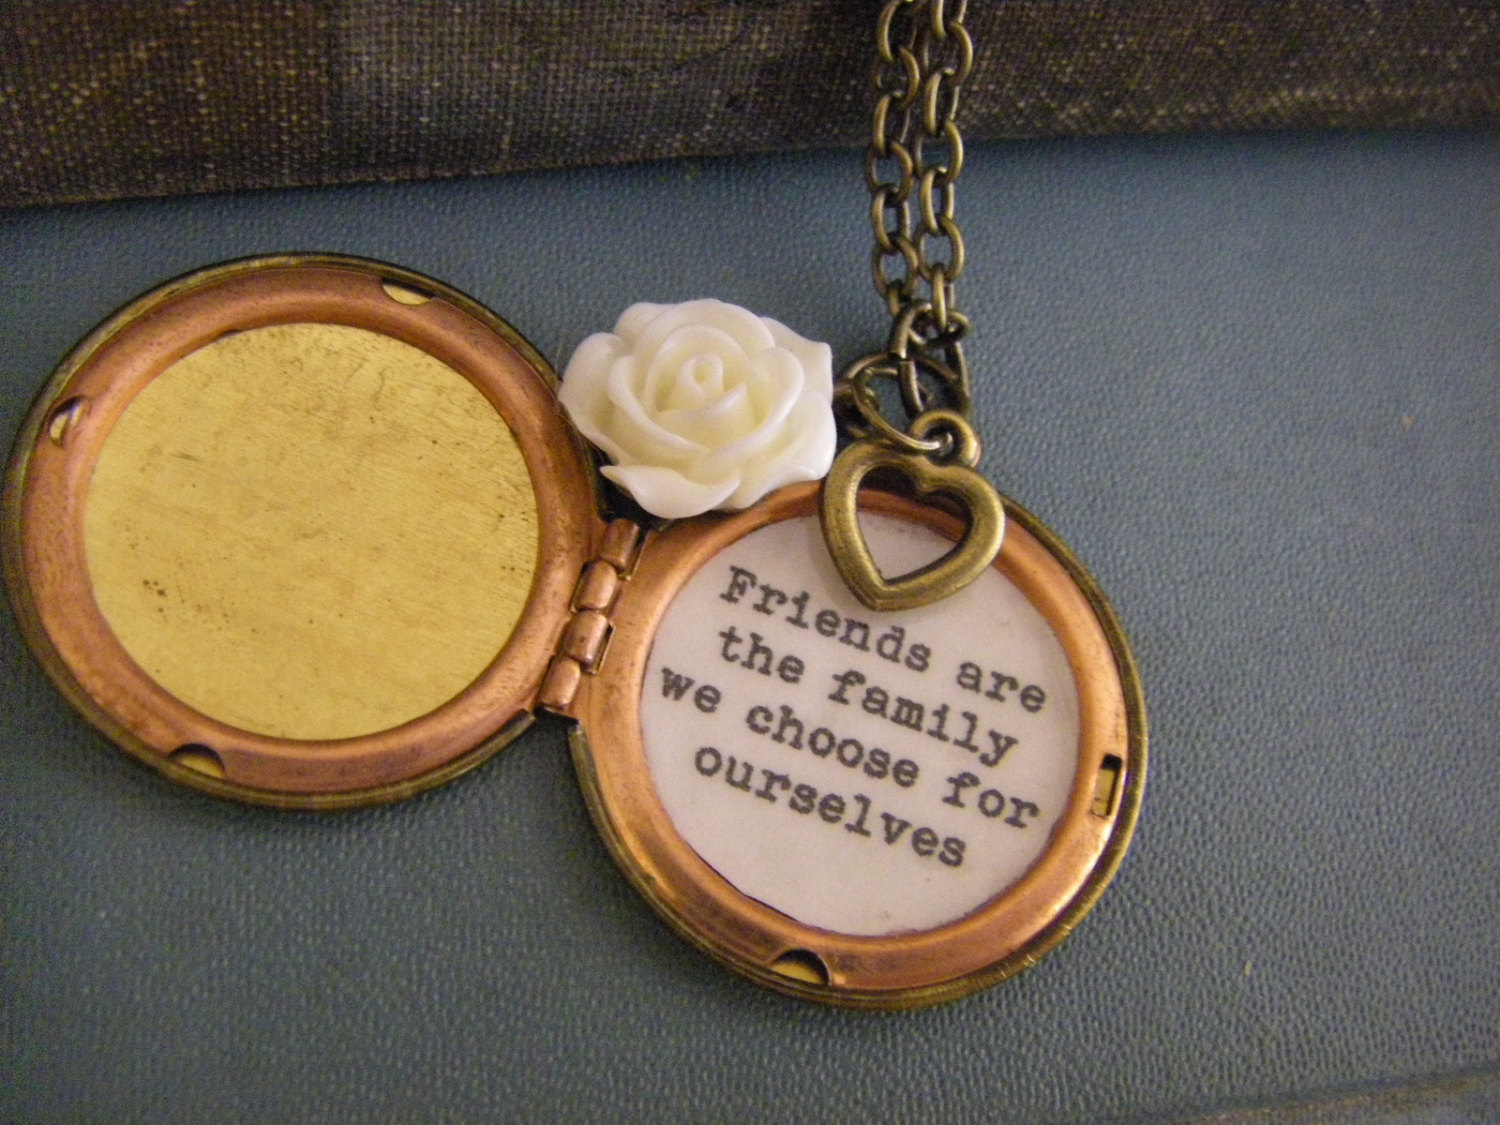 friendship images sea gold jewelry shell locket jewellery seaside lockets rose necklace search